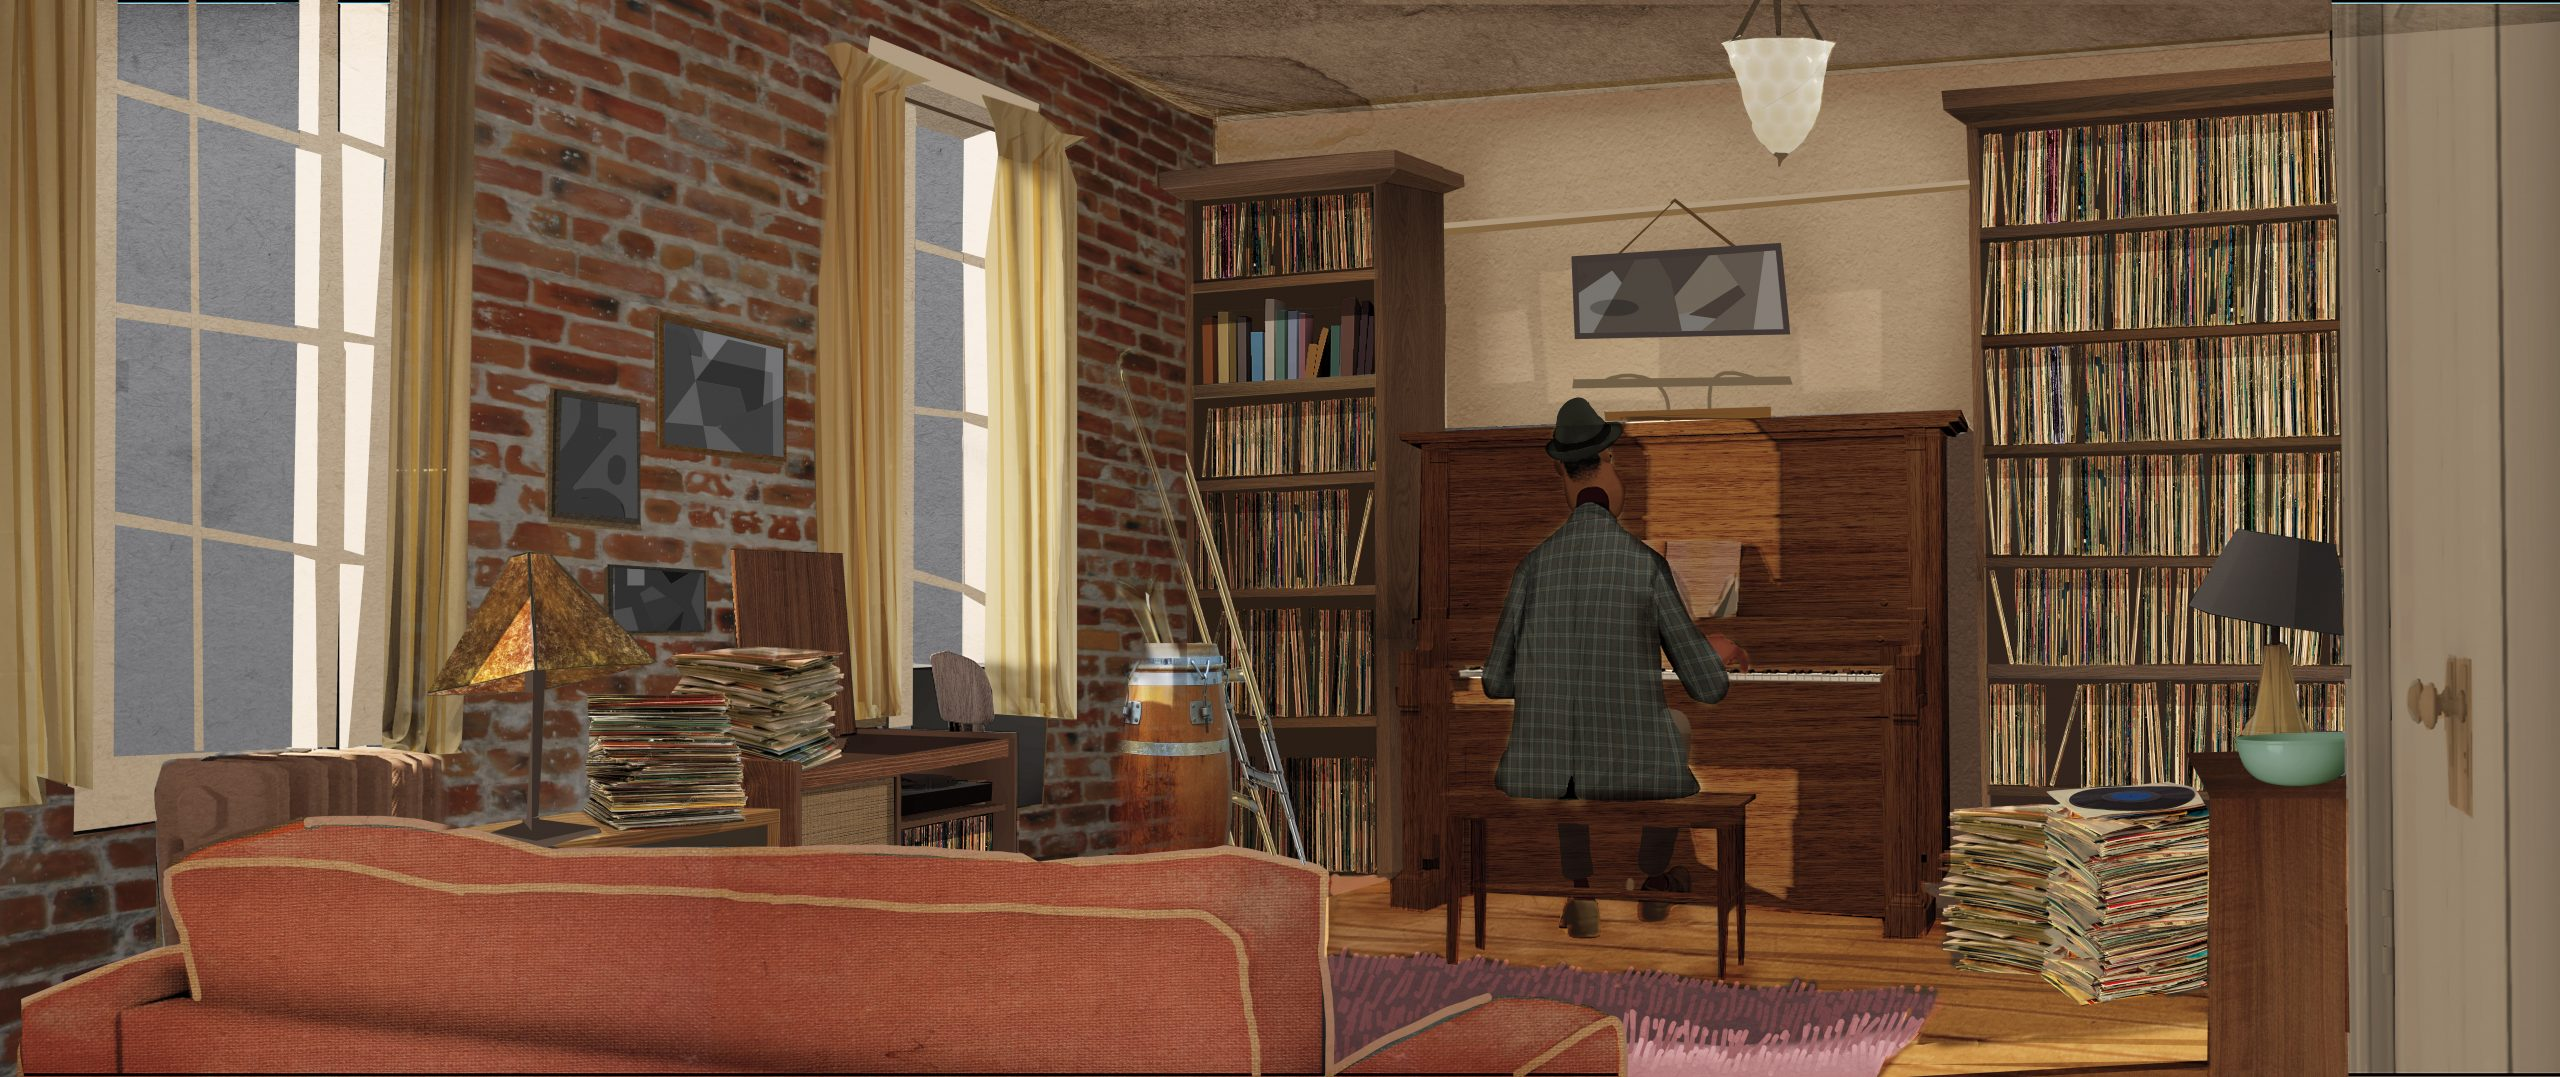 This concept art by Bryn Imagire shows Joe, a music teacher with big dreams, at the piano in his apartment in Queens. The music for Soul came from the bandleader Jon Batiste. Image courtesy Disney/Pixar.